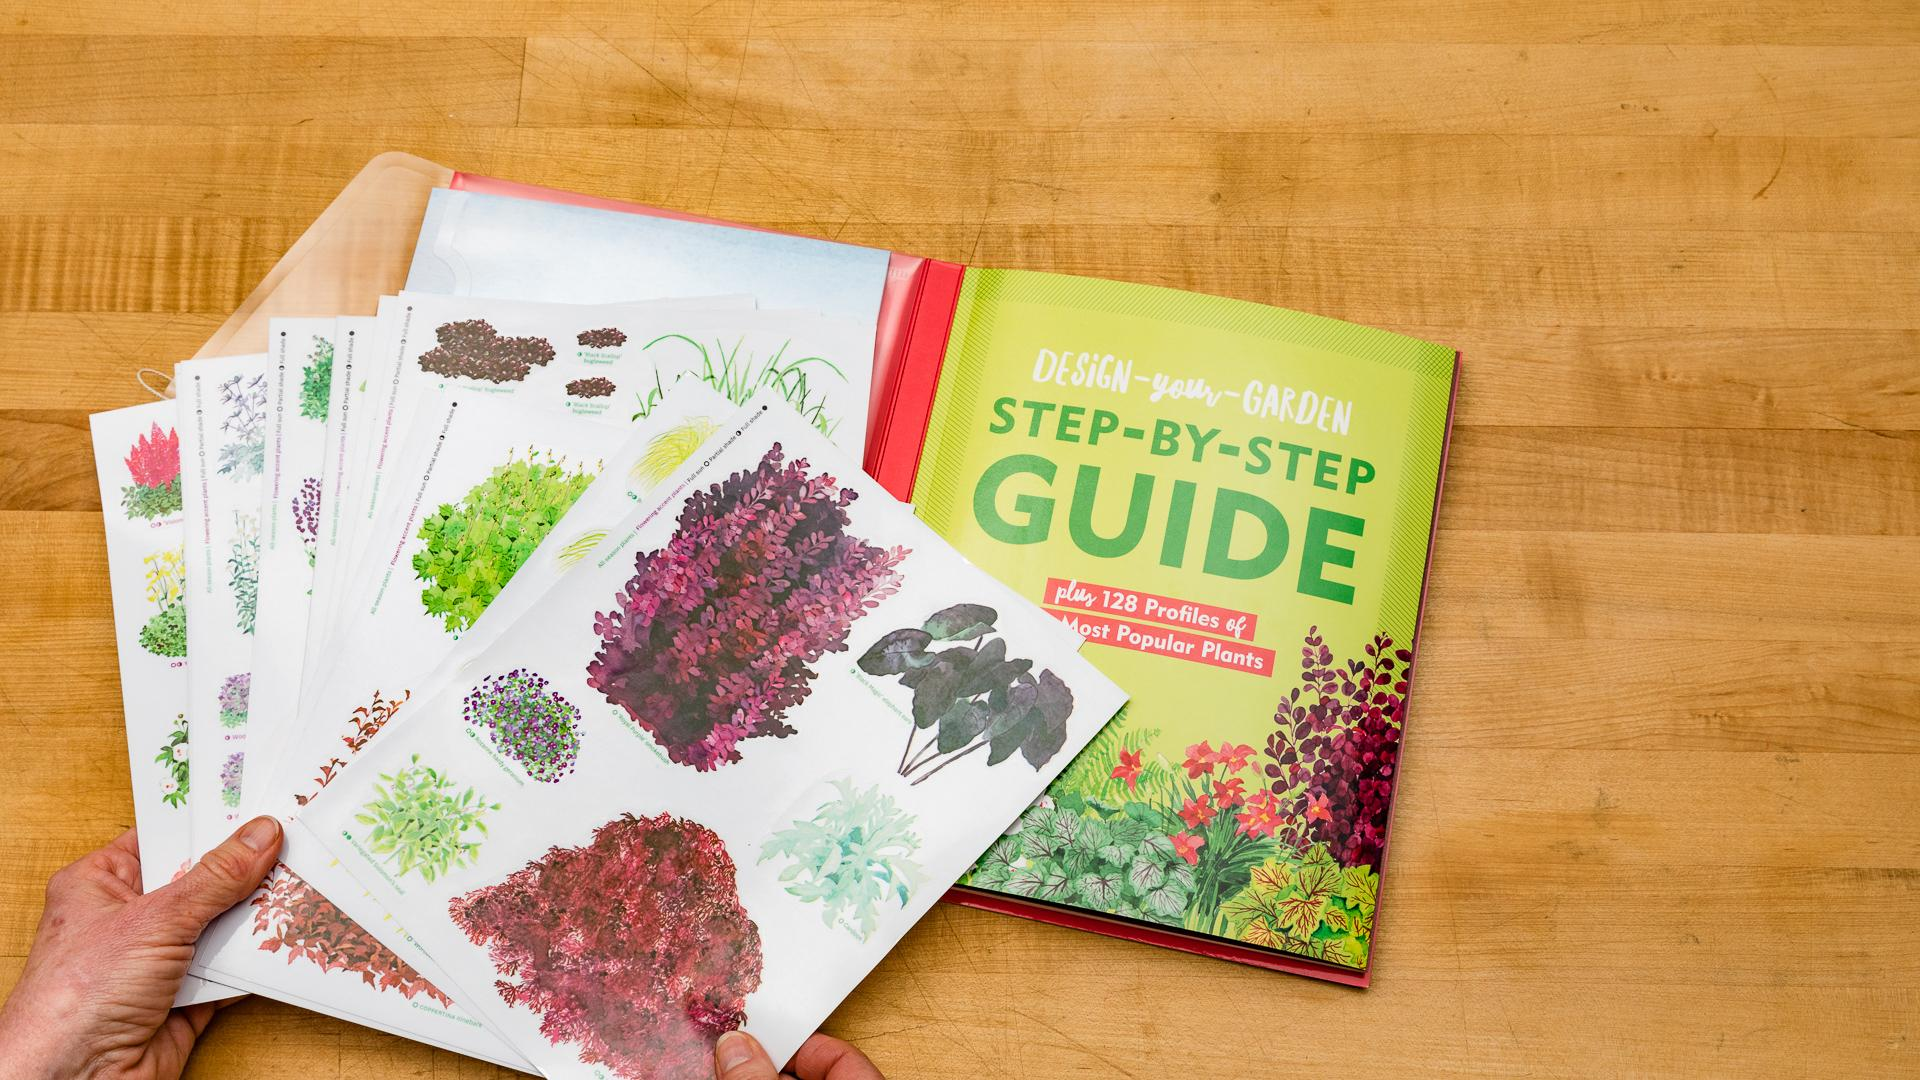 Inside are 150 reusable cling stickers of popular plants that grow well in most temperate gardens.